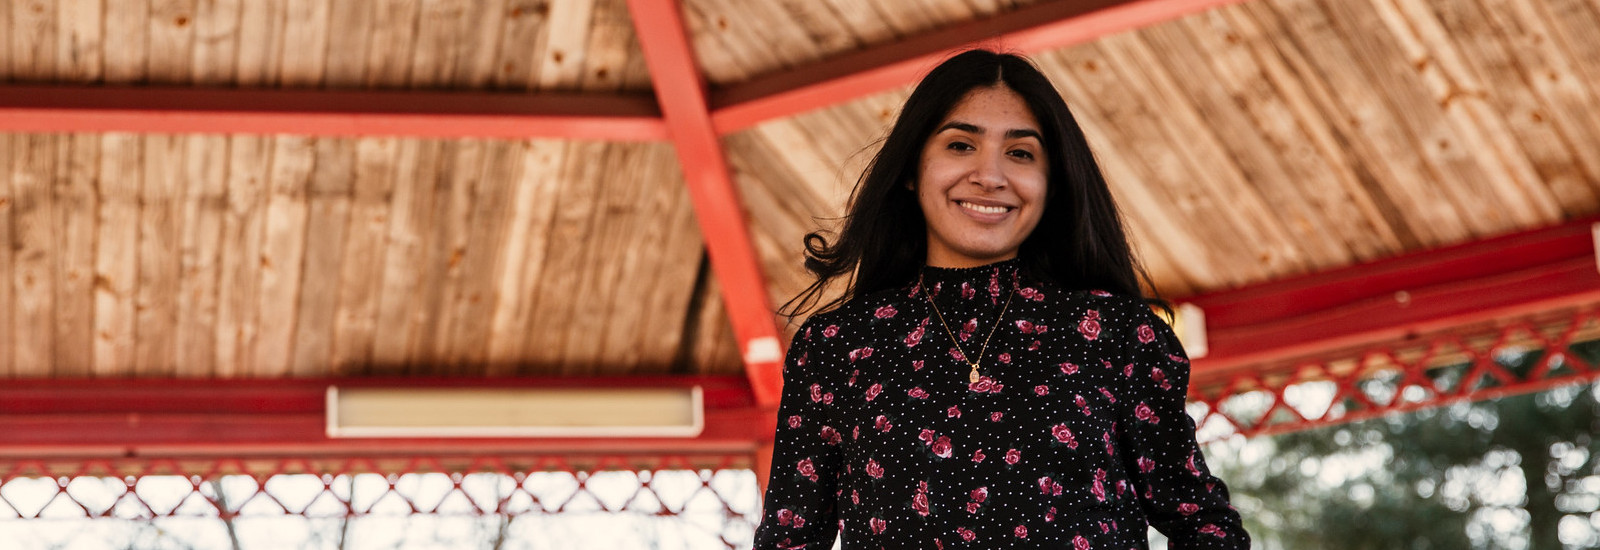 Brittany stands underneath a gazebo on campus.